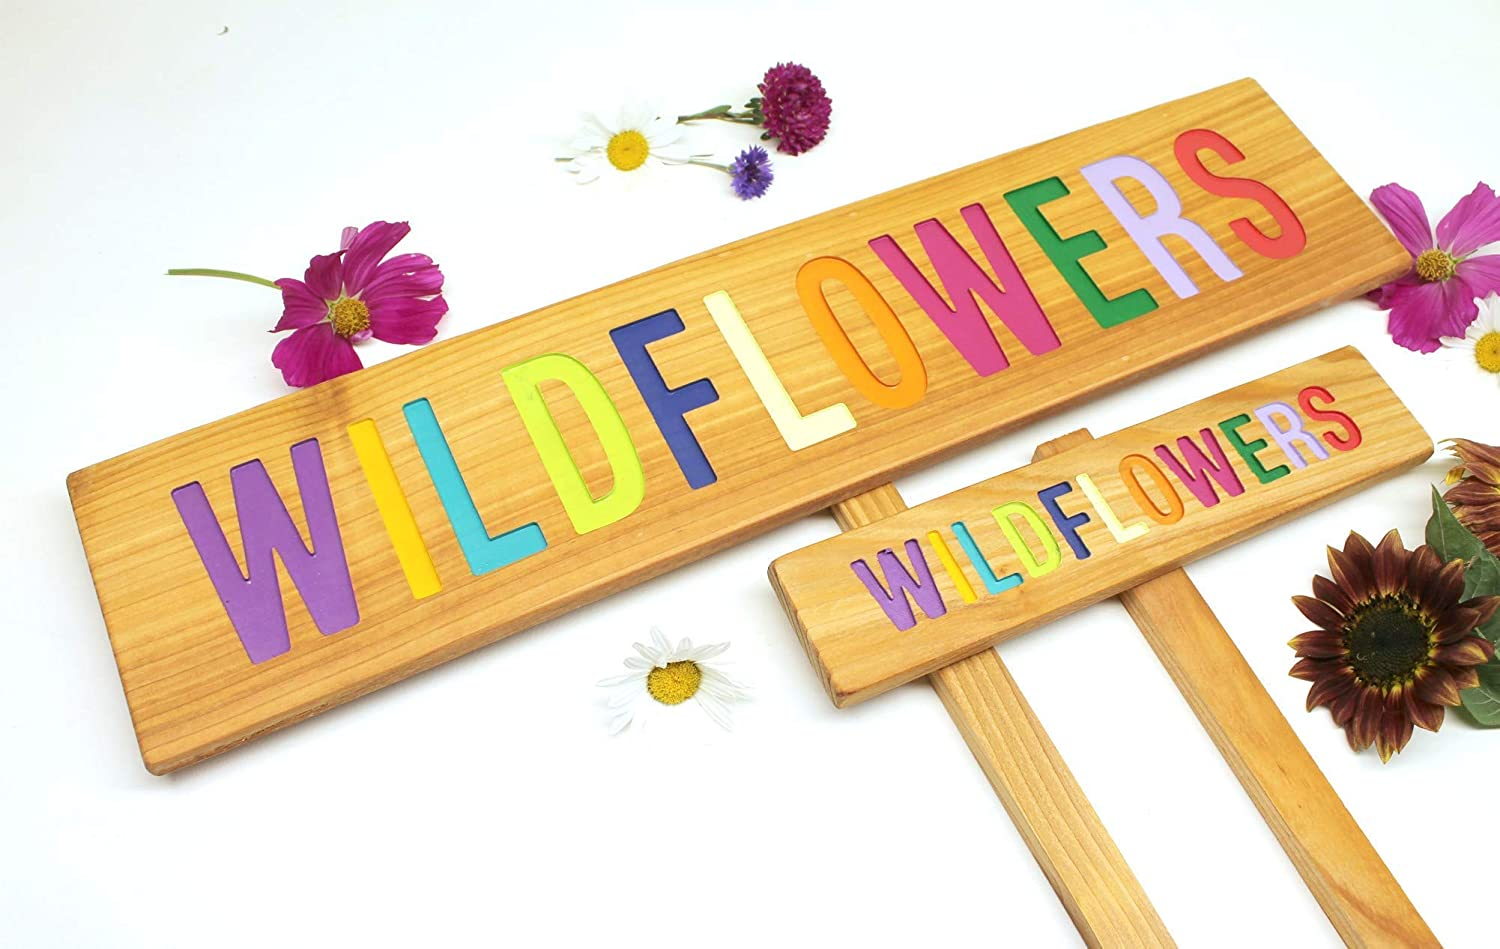 Wildflowers Colorful Garden Natural Cheap bargain Popular products Decor Sign